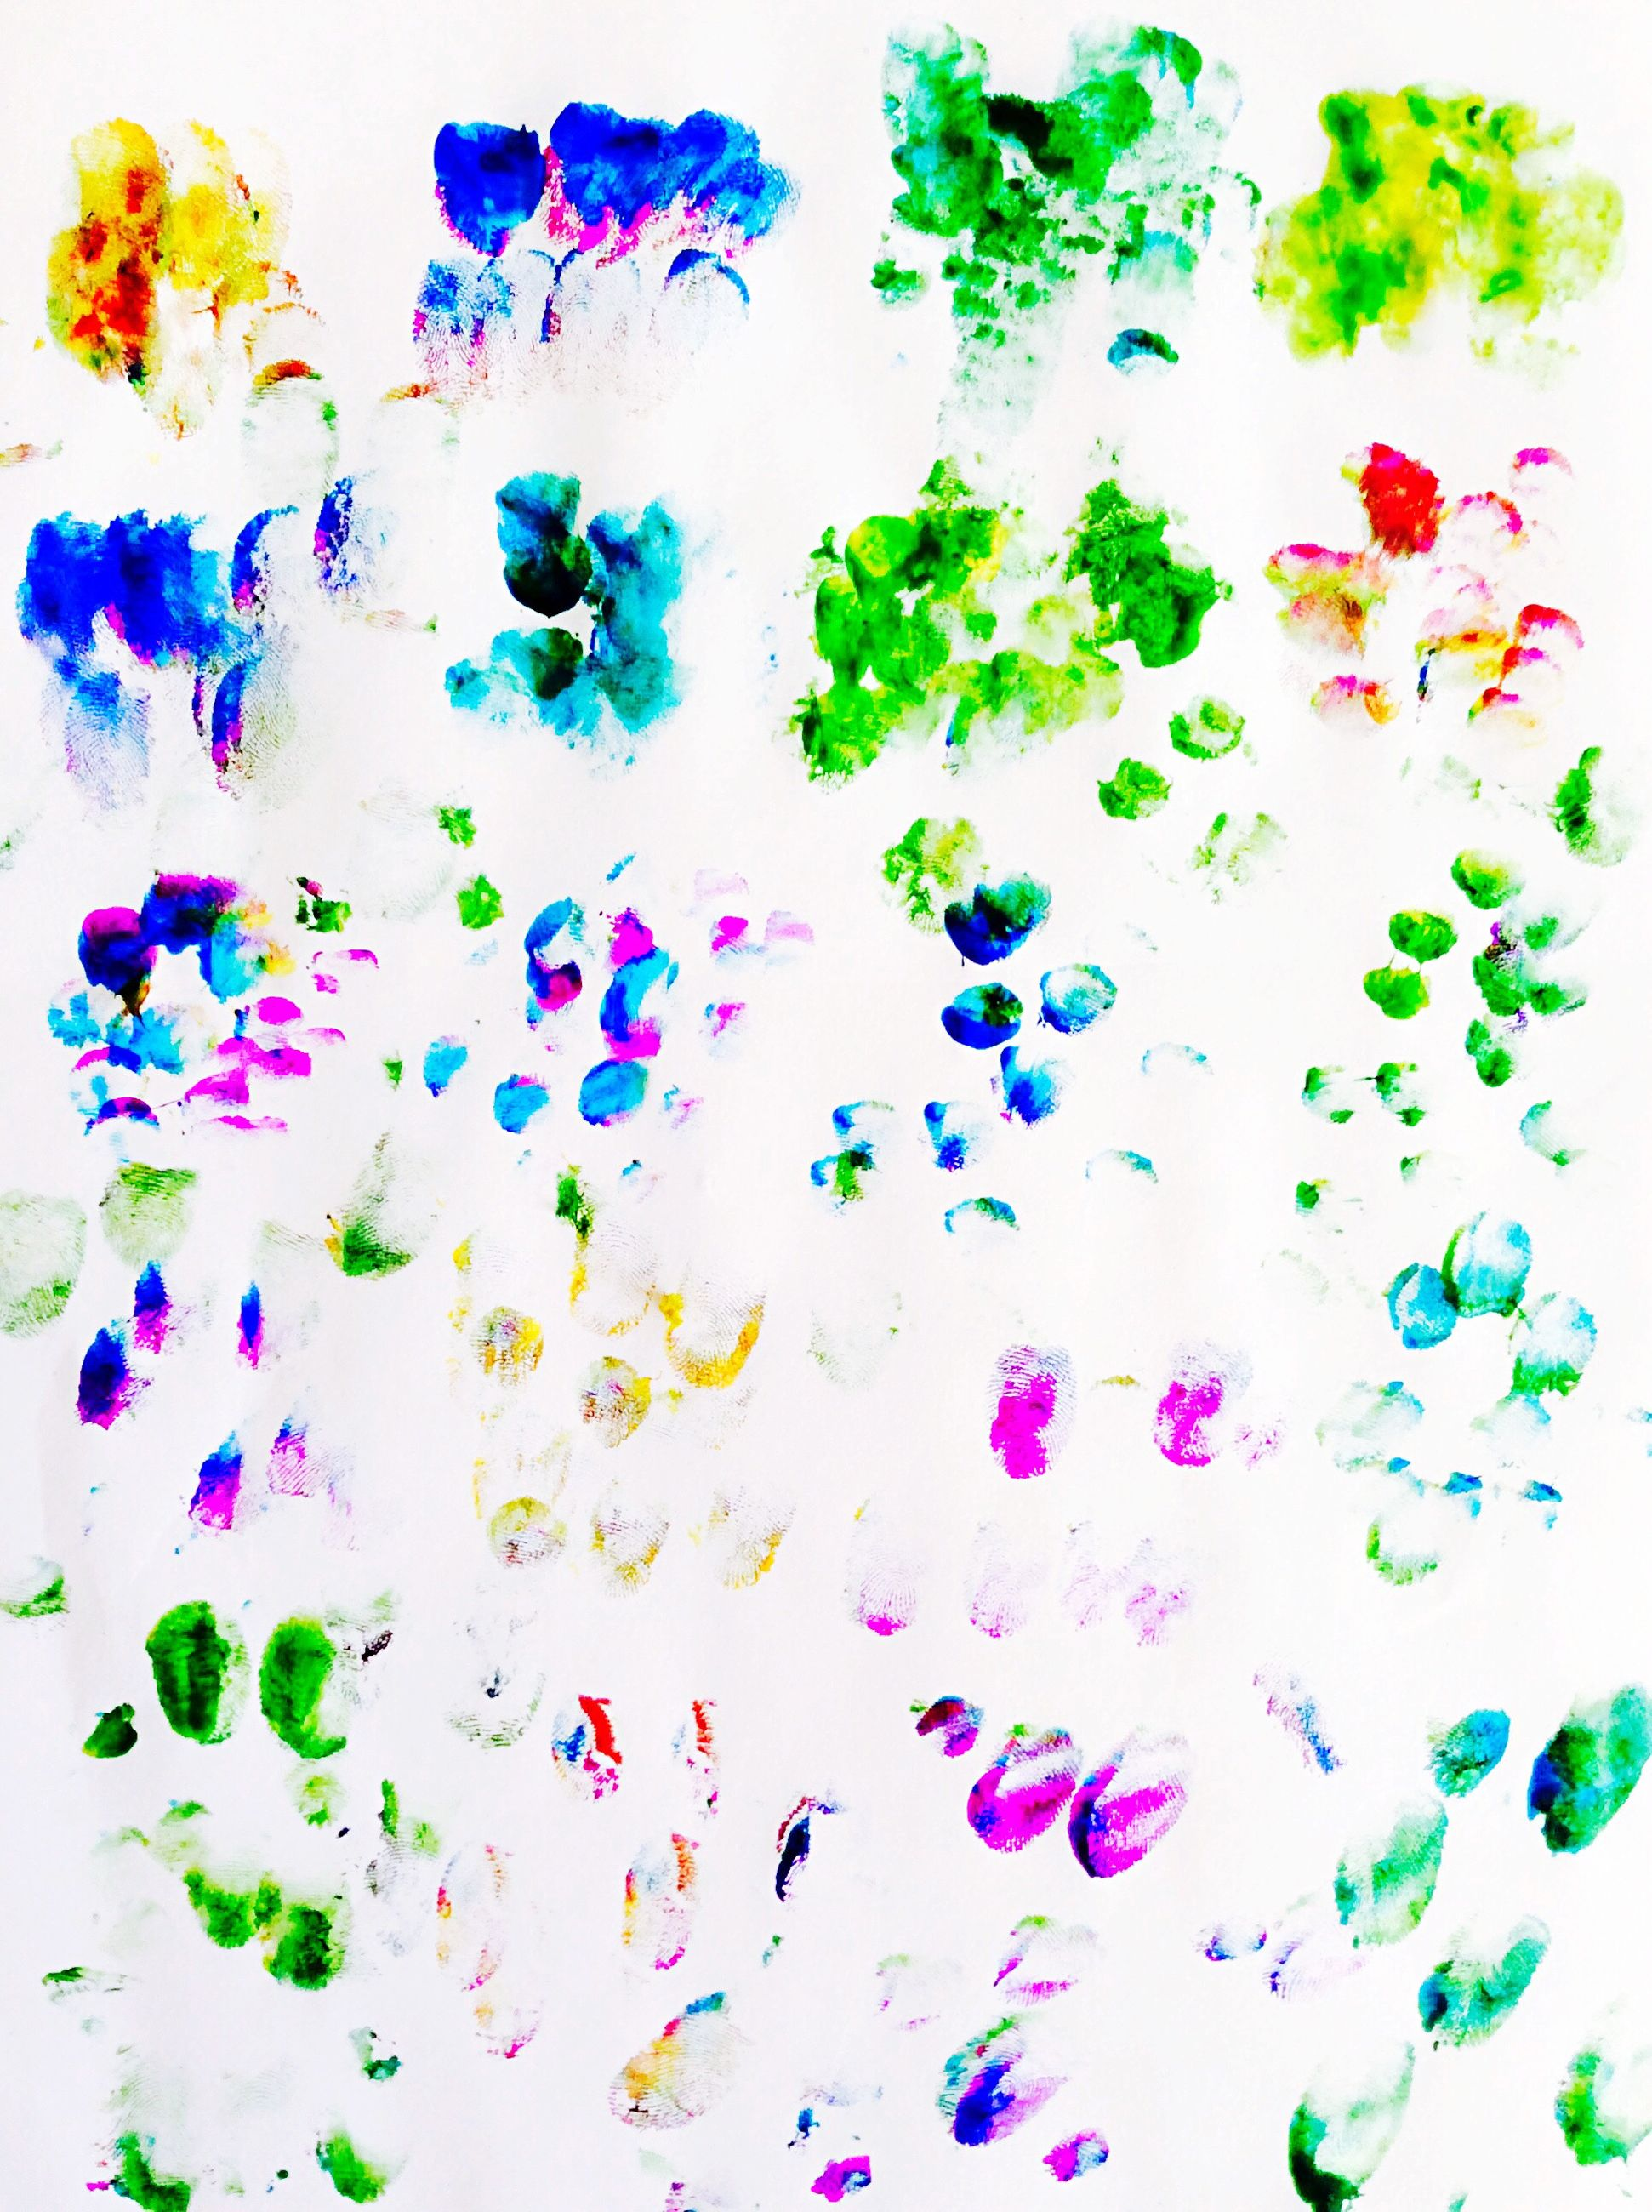 indoors, multi colored, pattern, high angle view, floral pattern, variation, colorful, full frame, still life, backgrounds, design, blue, flower, white background, directly above, close-up, decoration, studio shot, art and craft, table